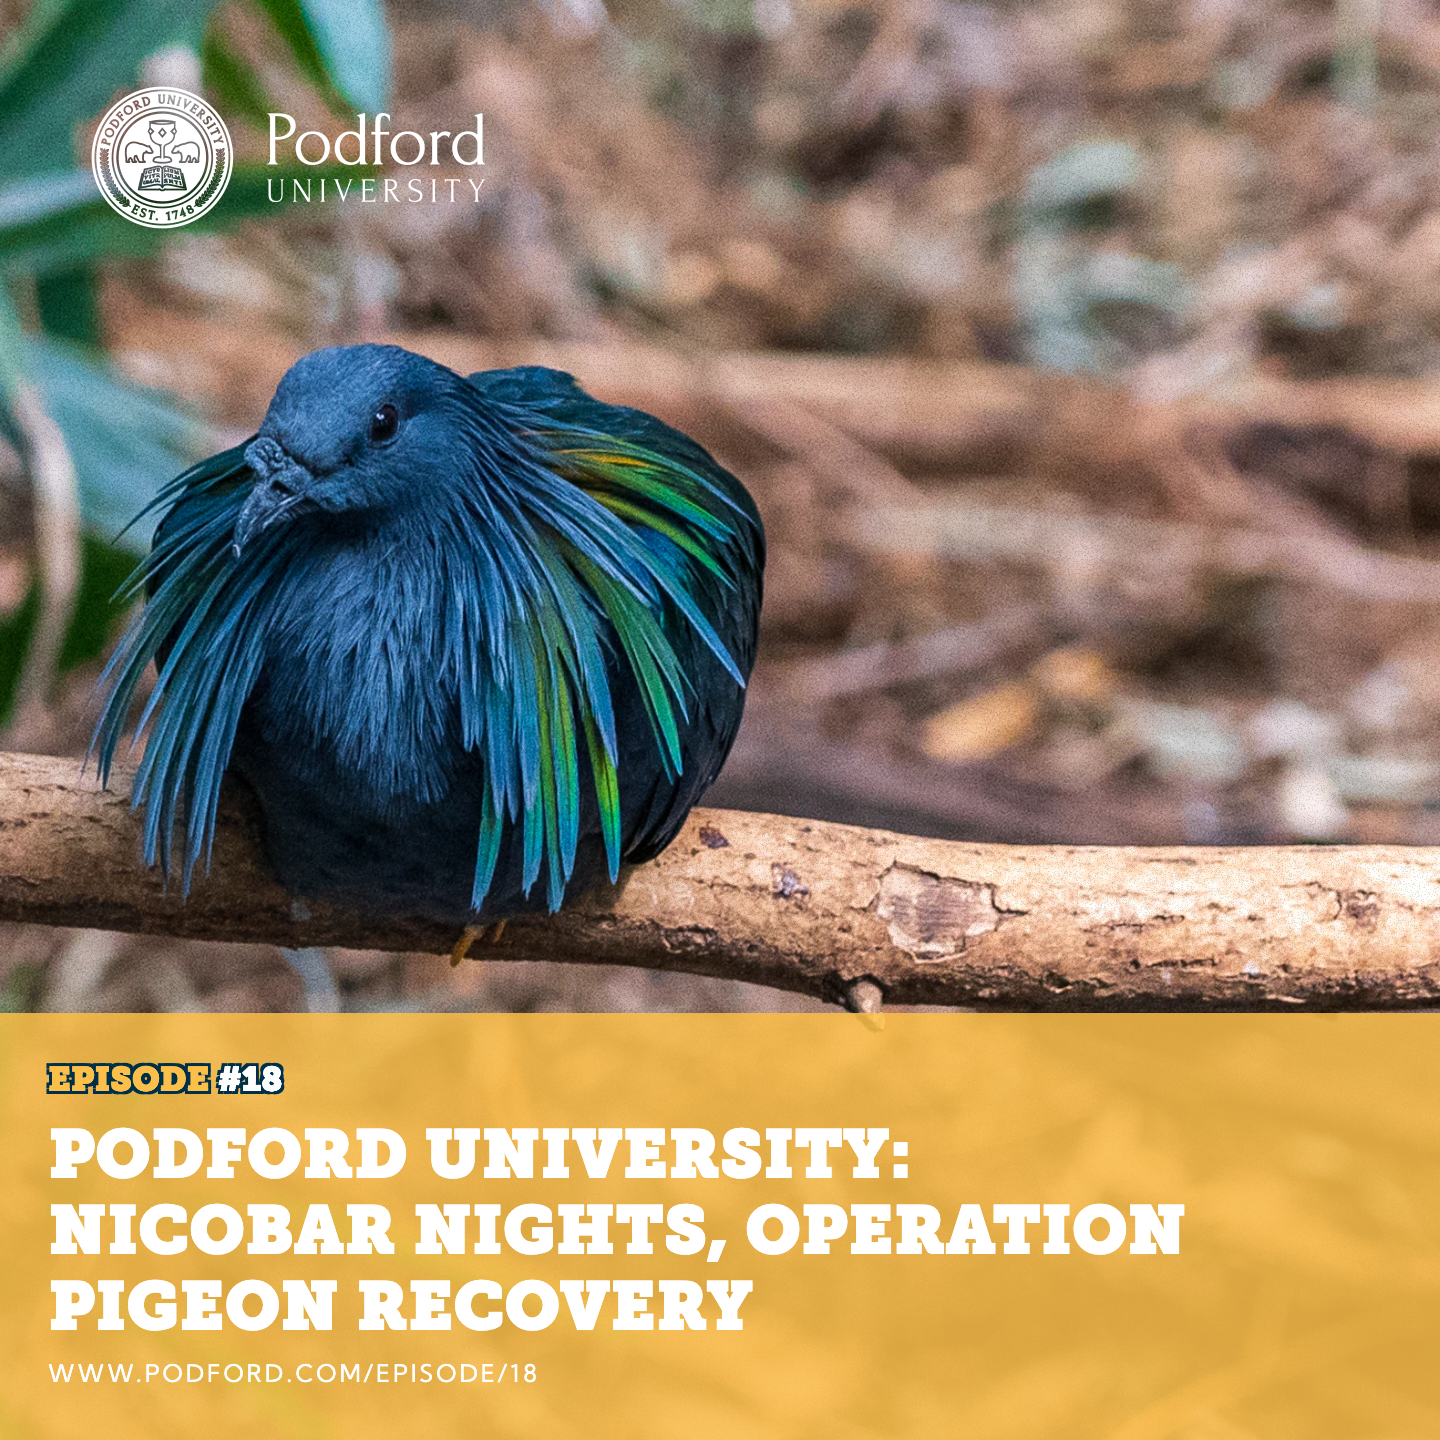 Podford University: Nicobar Nights, Operation Pigeon Recovery